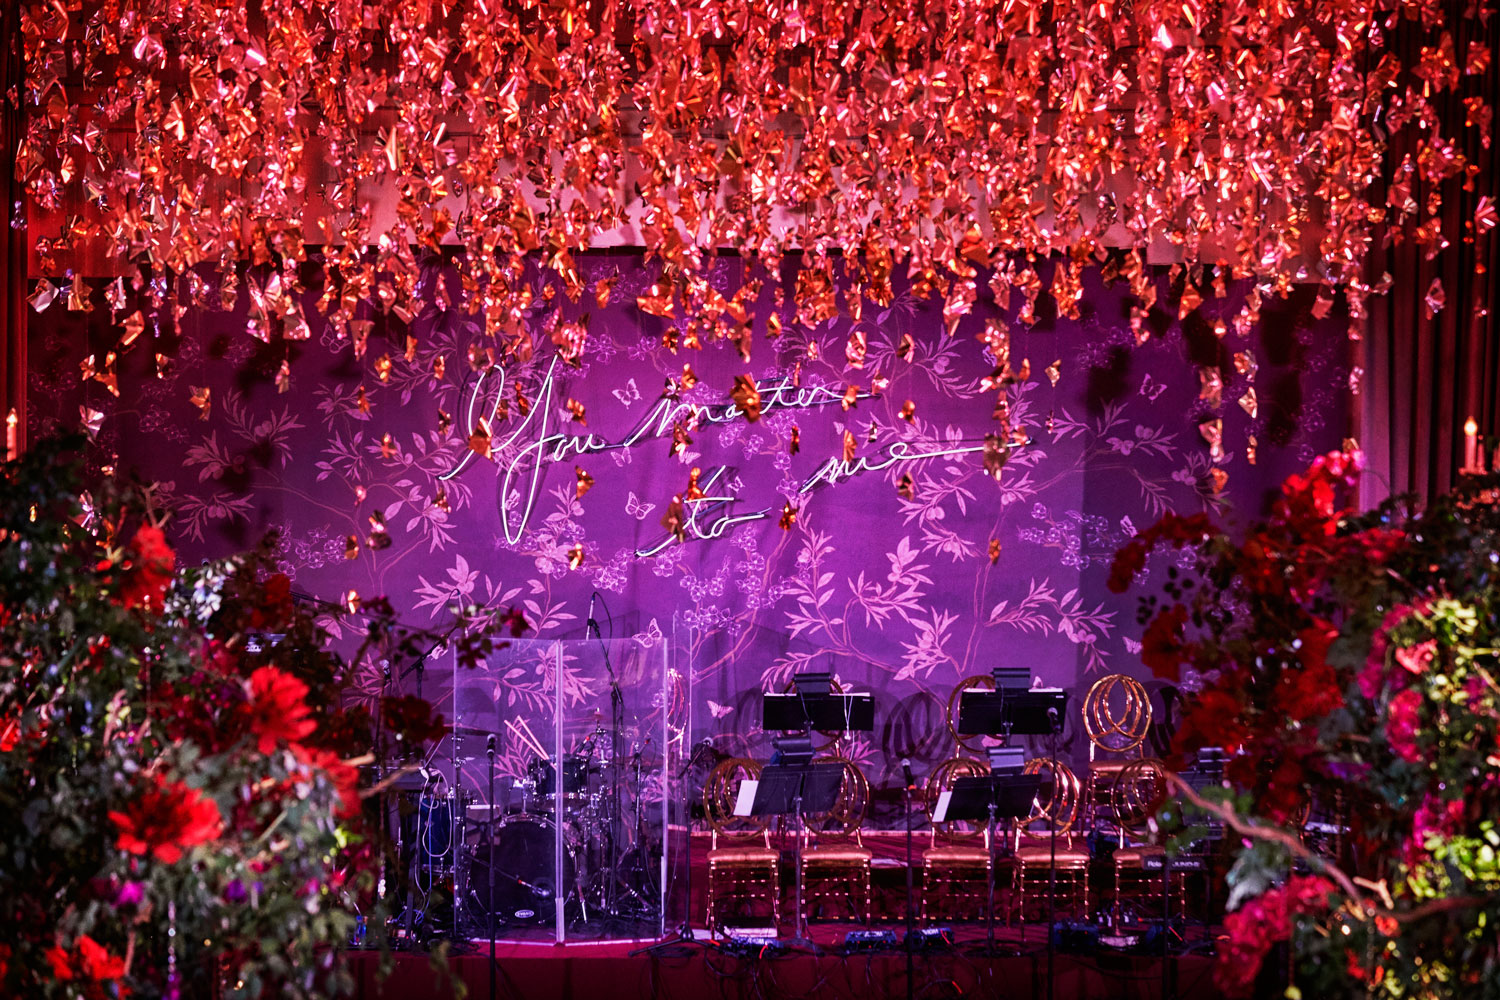 red flowers greenery purple lighting neon sign wedding ideas reception